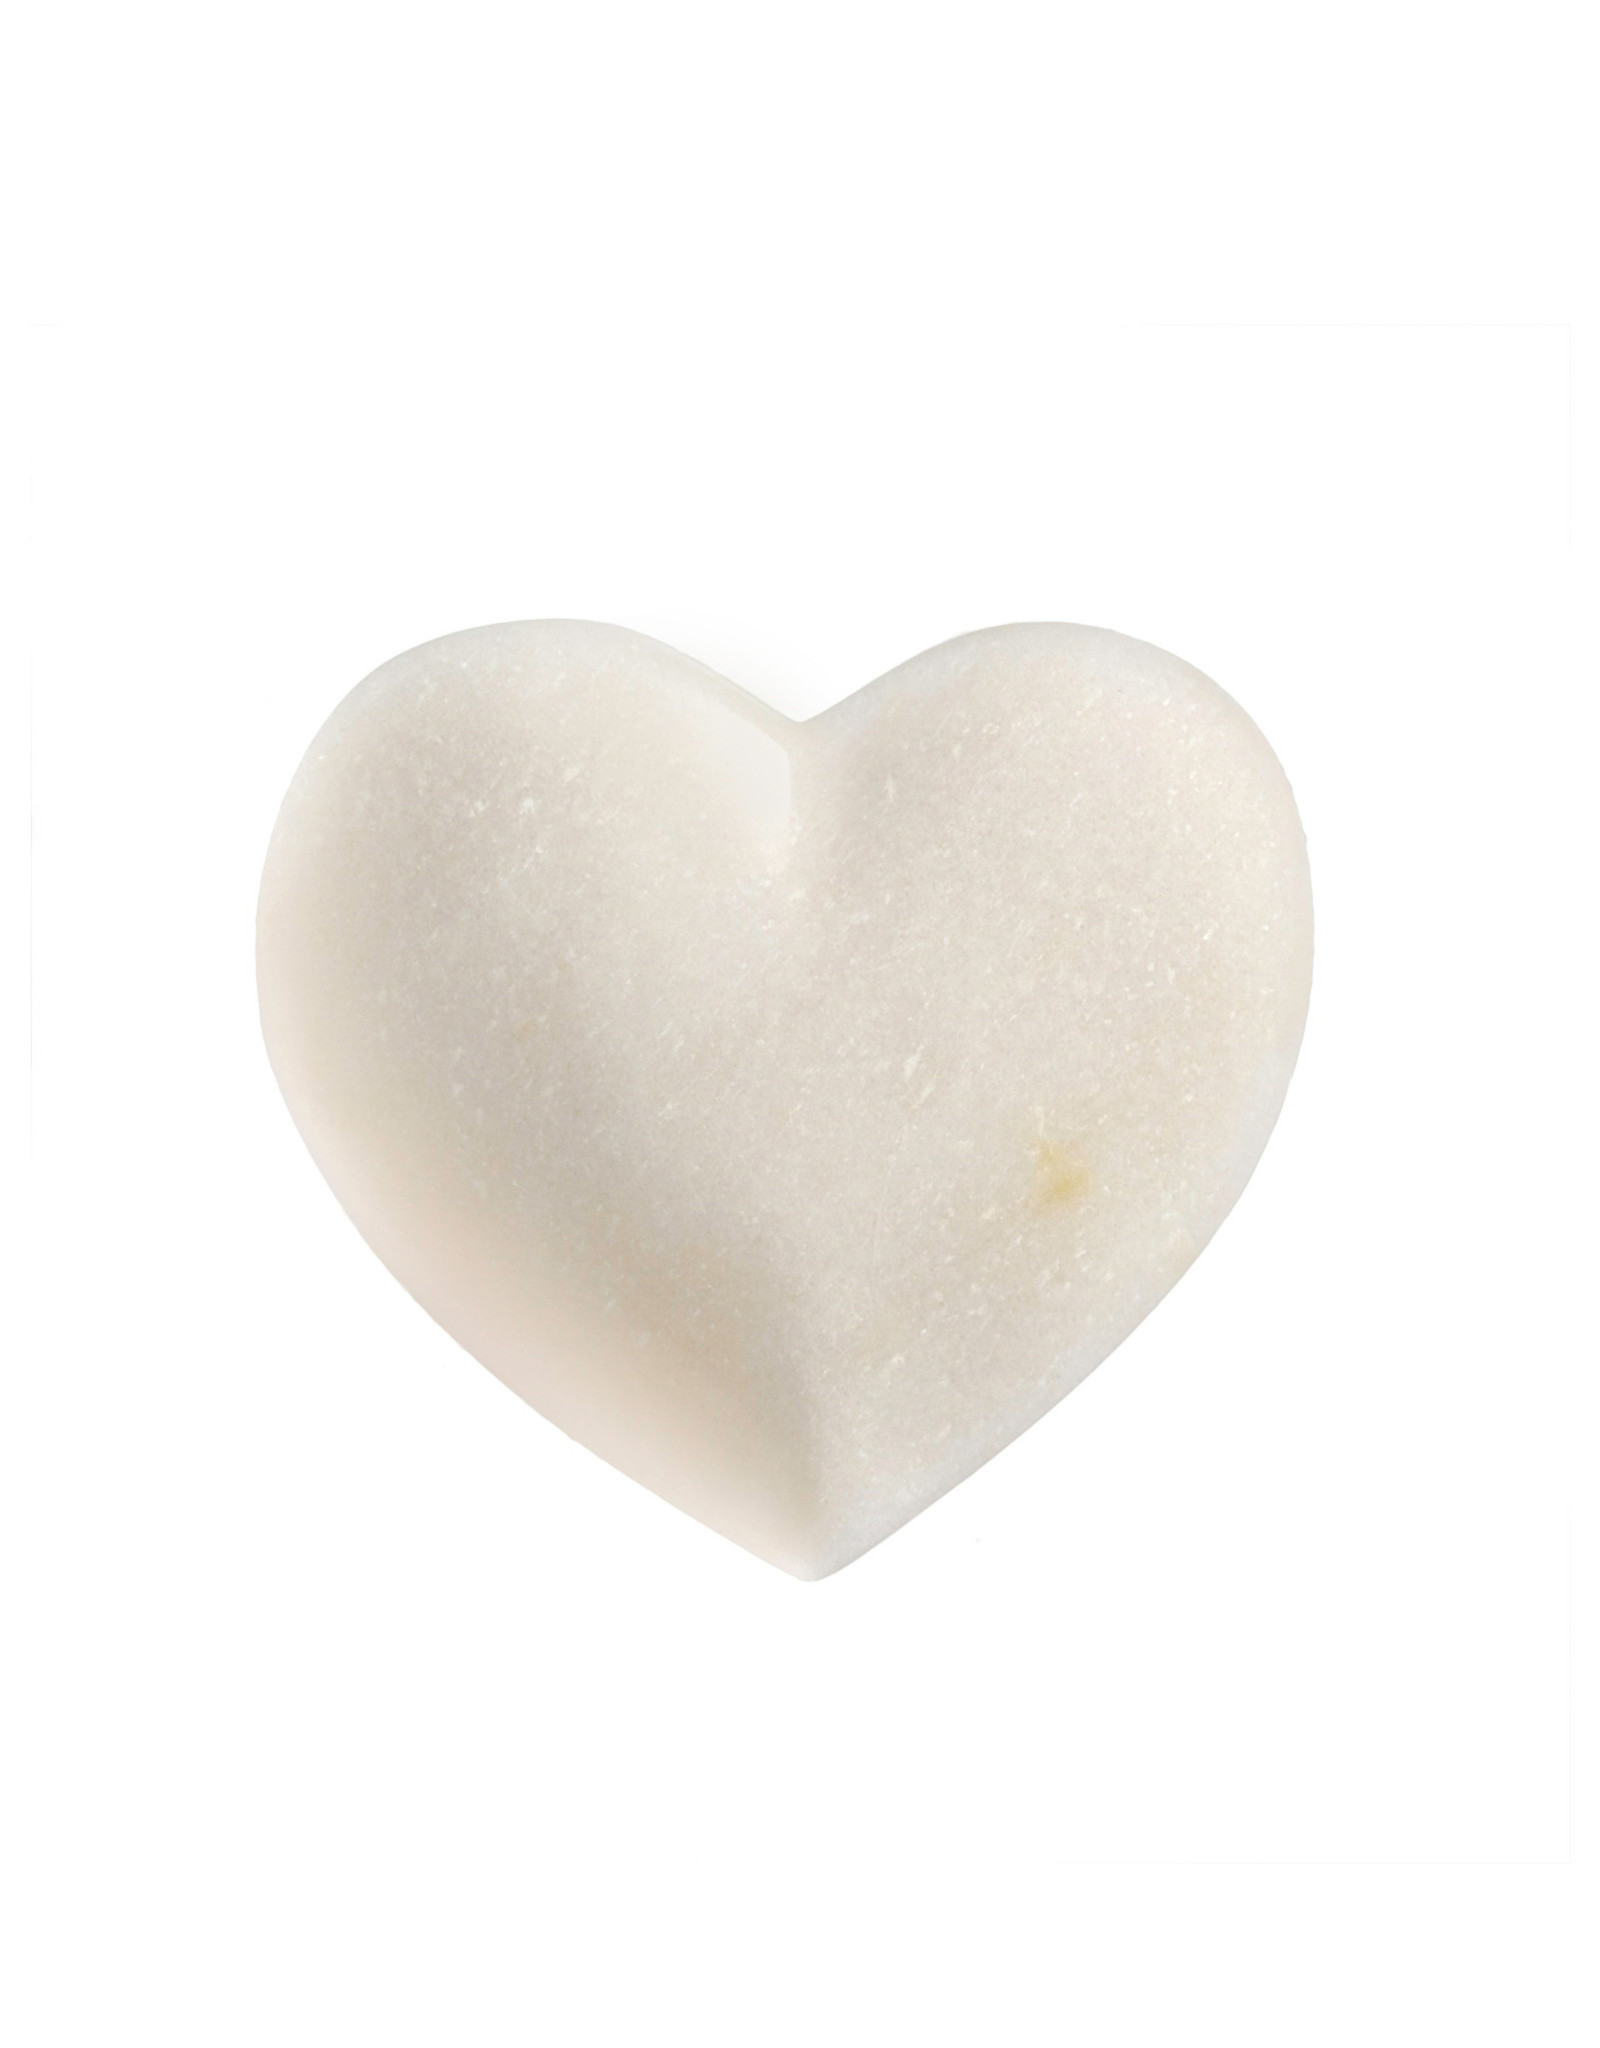 Marble Heart Dish - Large